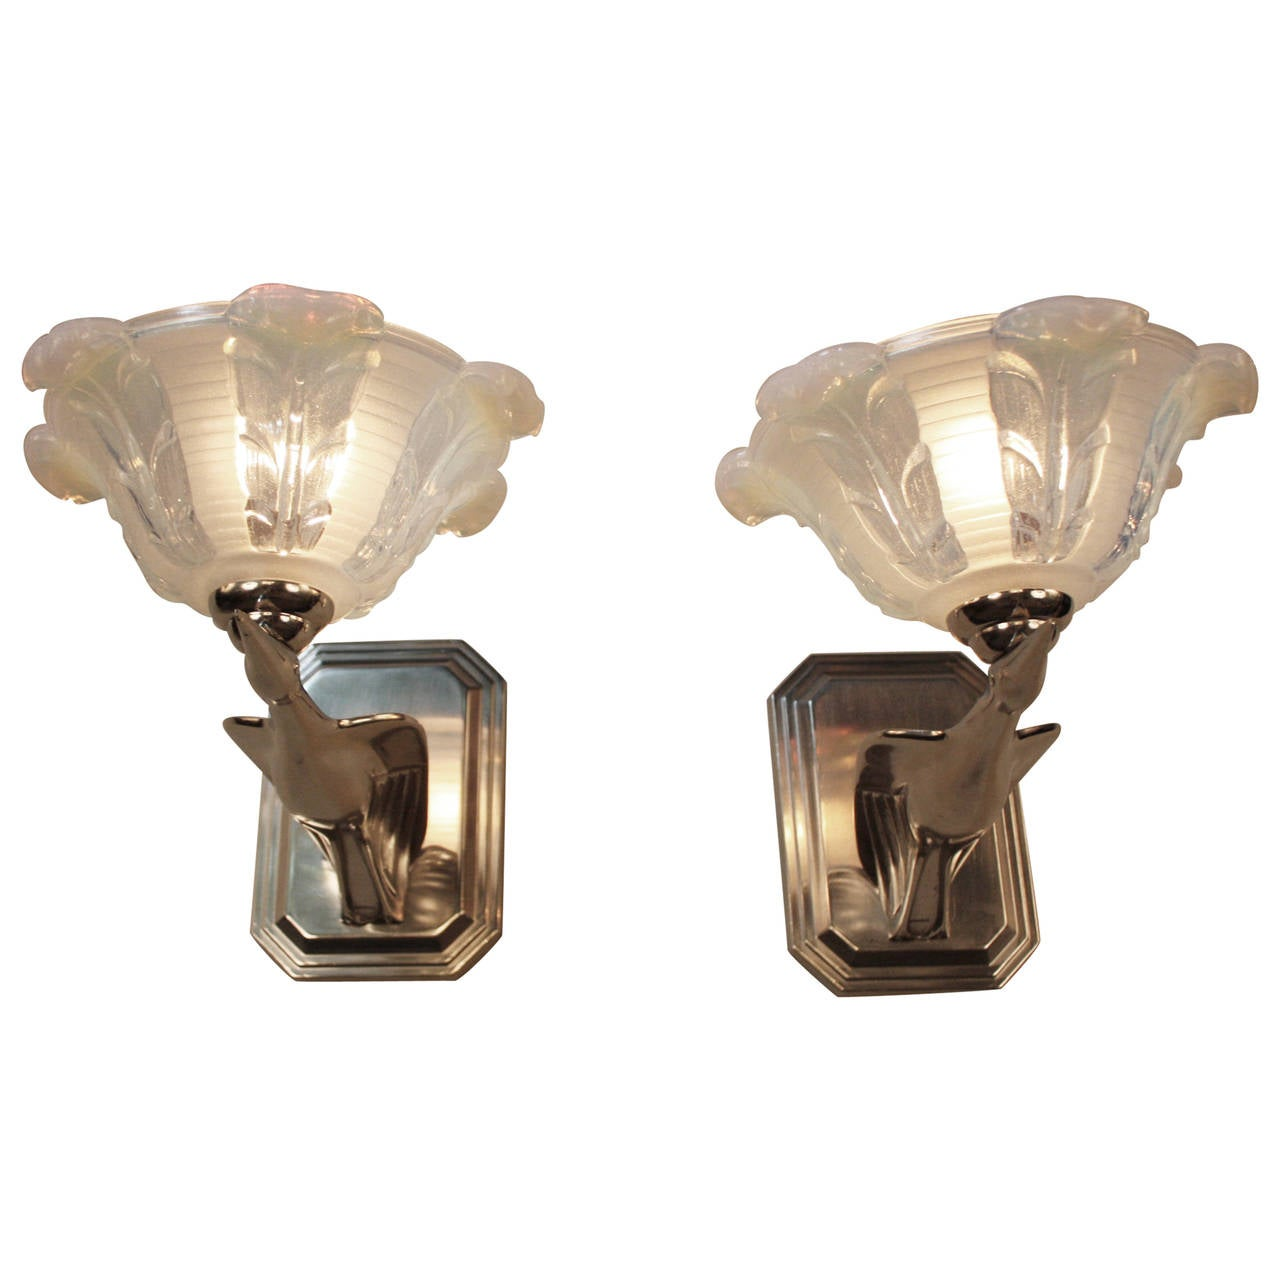 French Art Deco Wall Sconces : French Art Deco Nickel Wall Sconces in Flying Motion and Opalescent Shades at 1stdibs